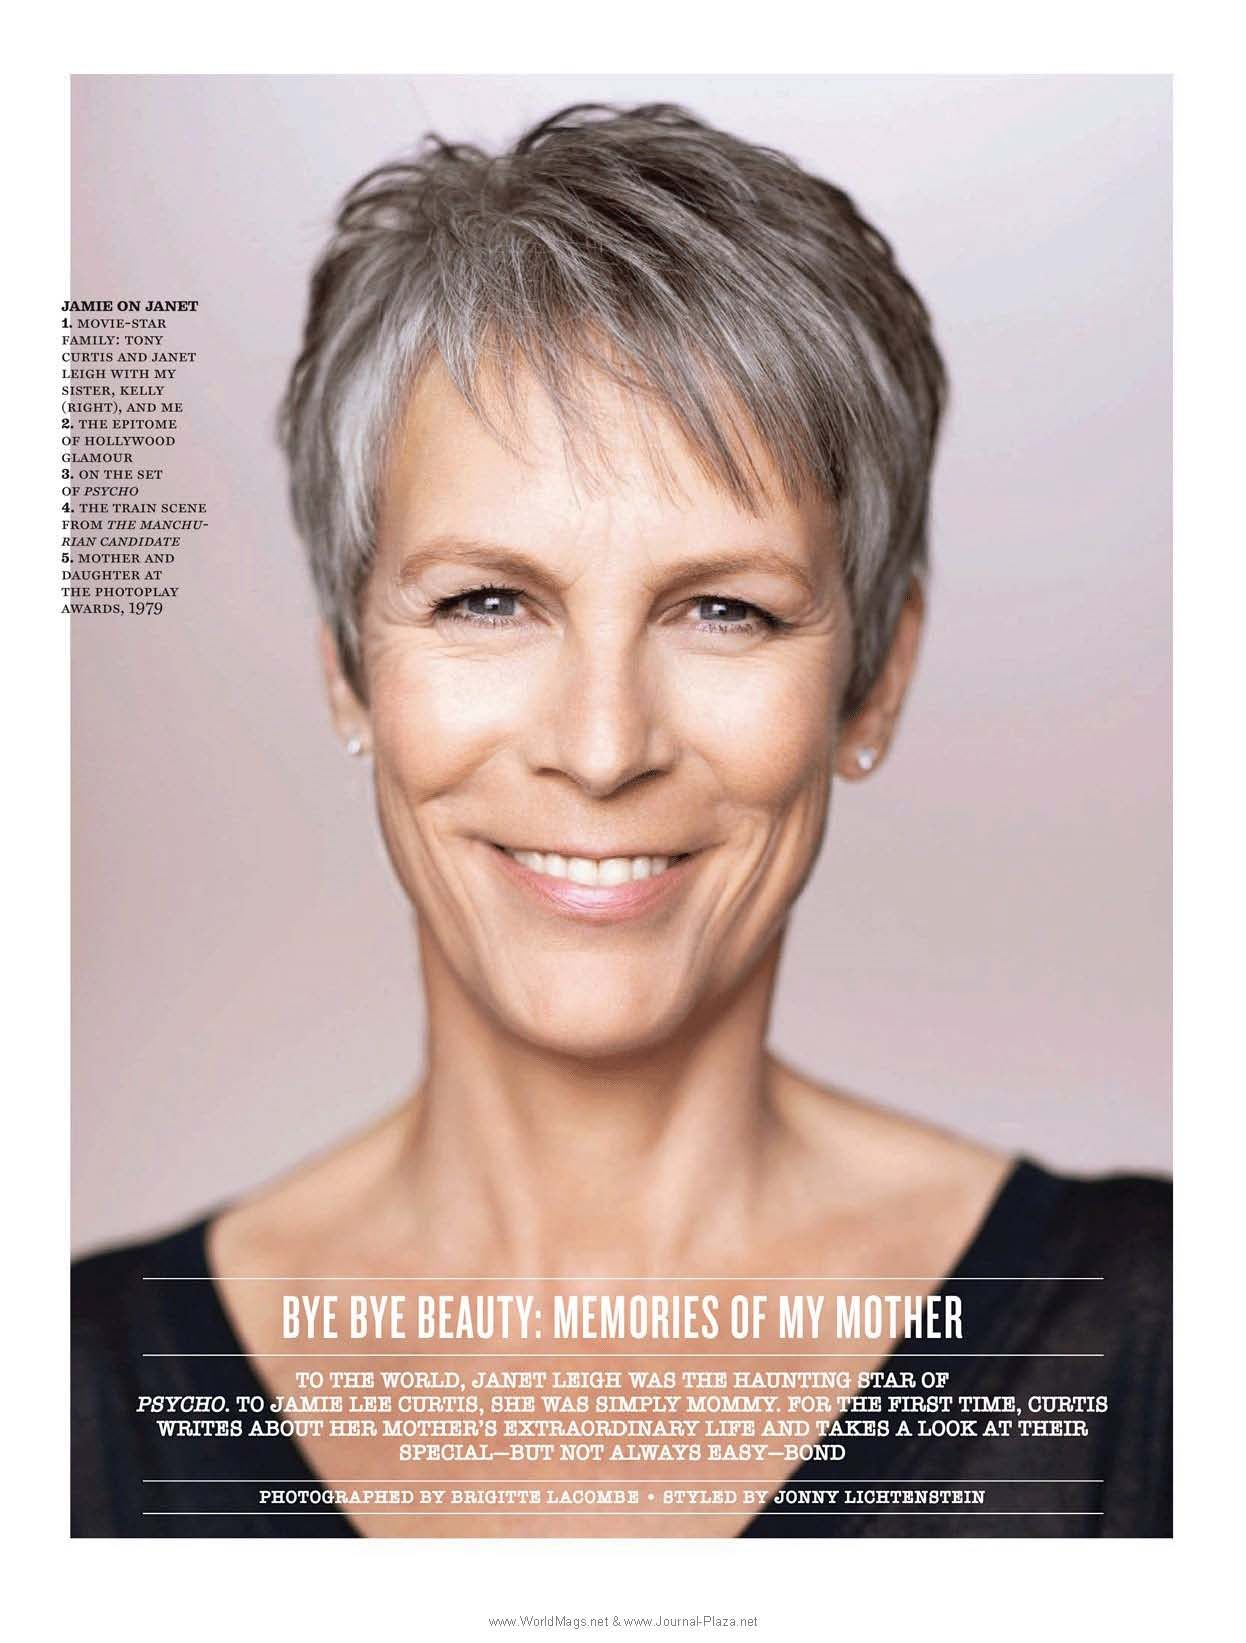 jamie lee curtis - i had a crush on her when she was in the